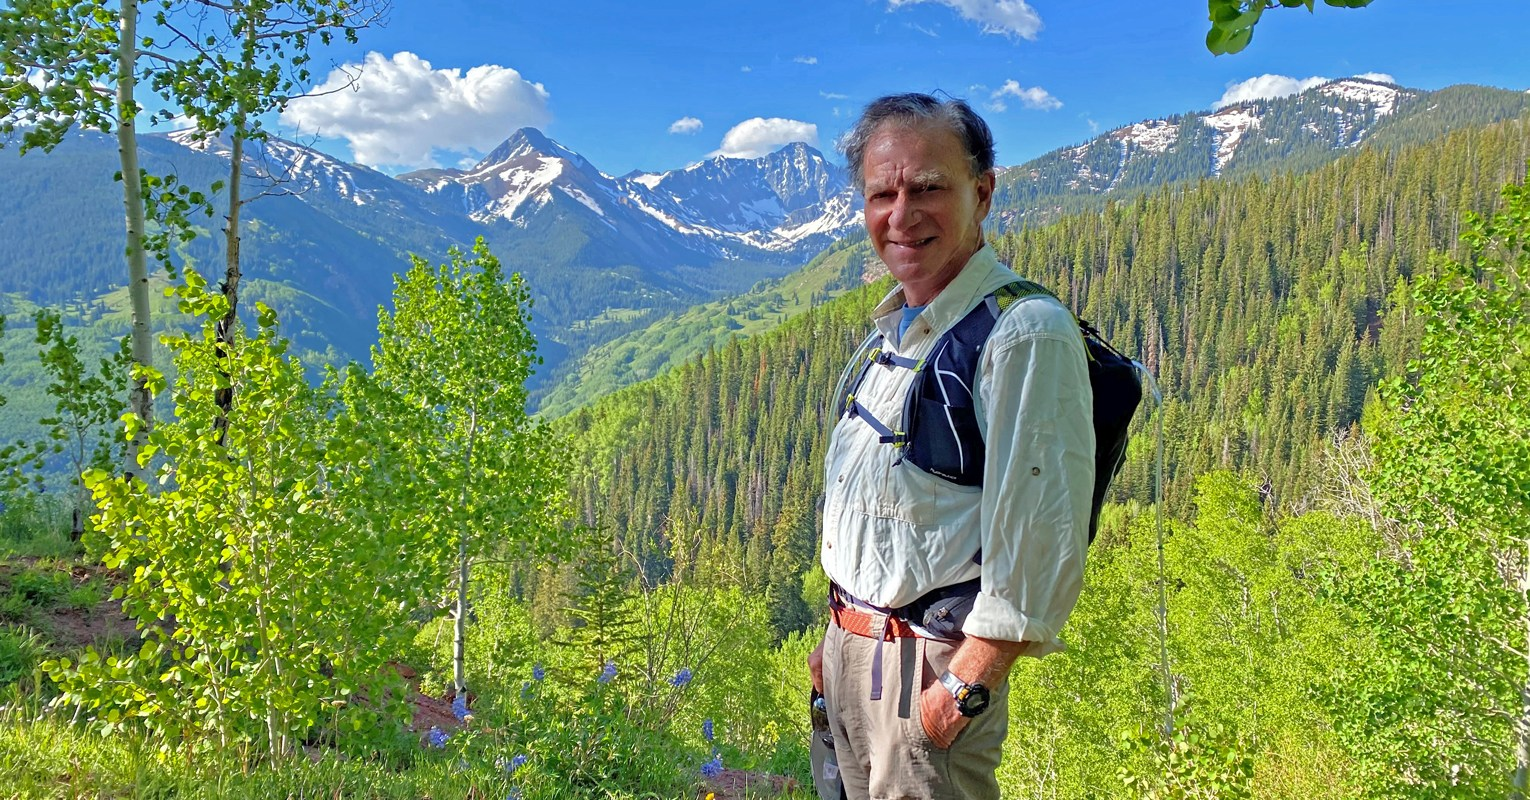 Rick Crandall at trailhead with mountains in the distance